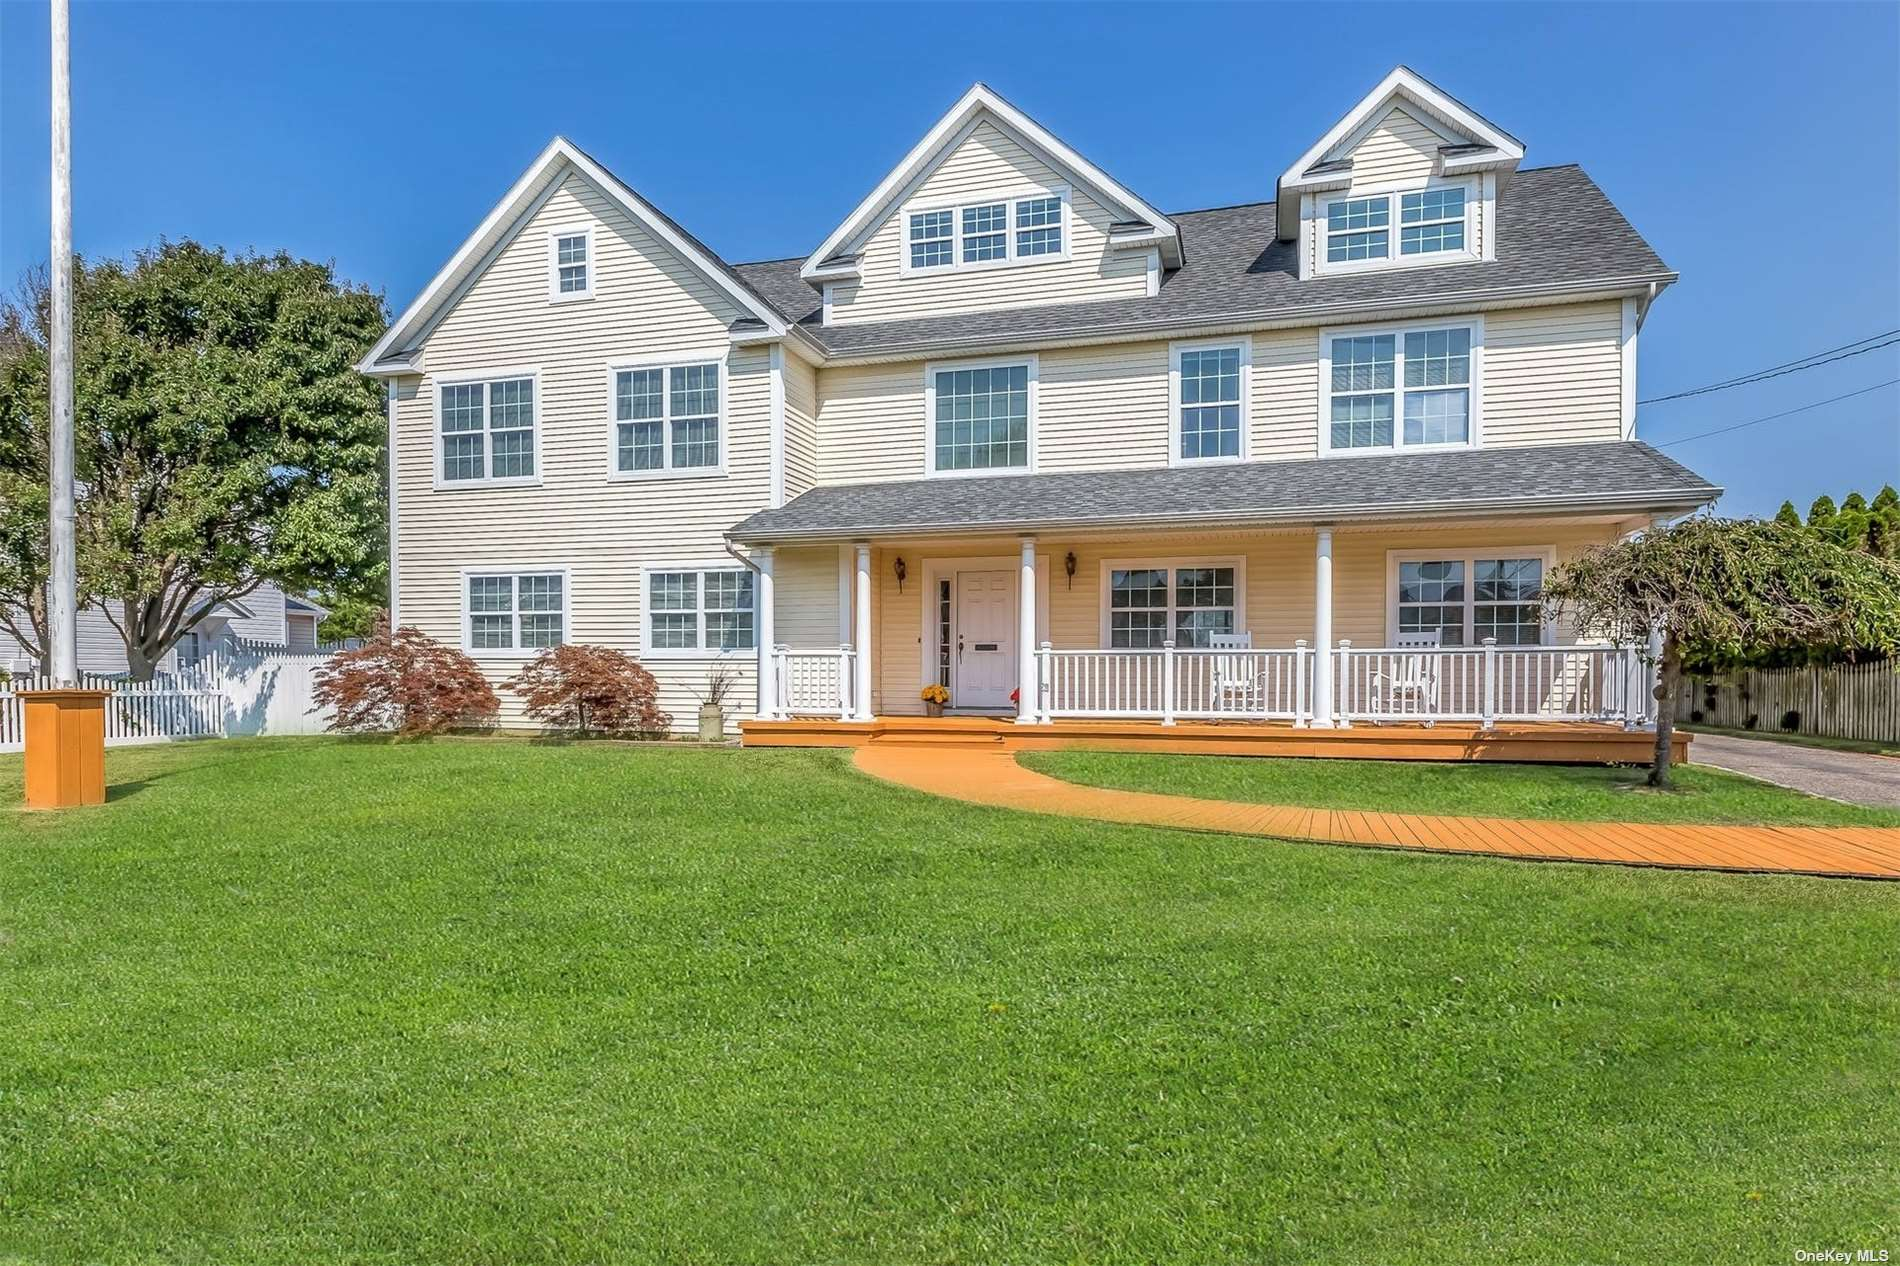 Superb location in South Sayville, with Bay and Canal views! Bright and sunny; this updated colonial offers an open floor plan and generously sized rooms. Welcoming front porch, double height entry foyer, hardwood floors, big and comfy great room, home office, wide open kitchen, dining and sitting area, full bathroom, plus laundry/mud room make up the first level. The upstairs bedrooms, with water views and high ceilings, all have unique architectural touches. The oversized master features two walk in closets and an office nook. The full stand up attic space is fantastic for storage. Nice sized property with detached two car garage and long private driveway. If you always wanted to be nestled in a waterfront community in a phenomenal town, look no further!